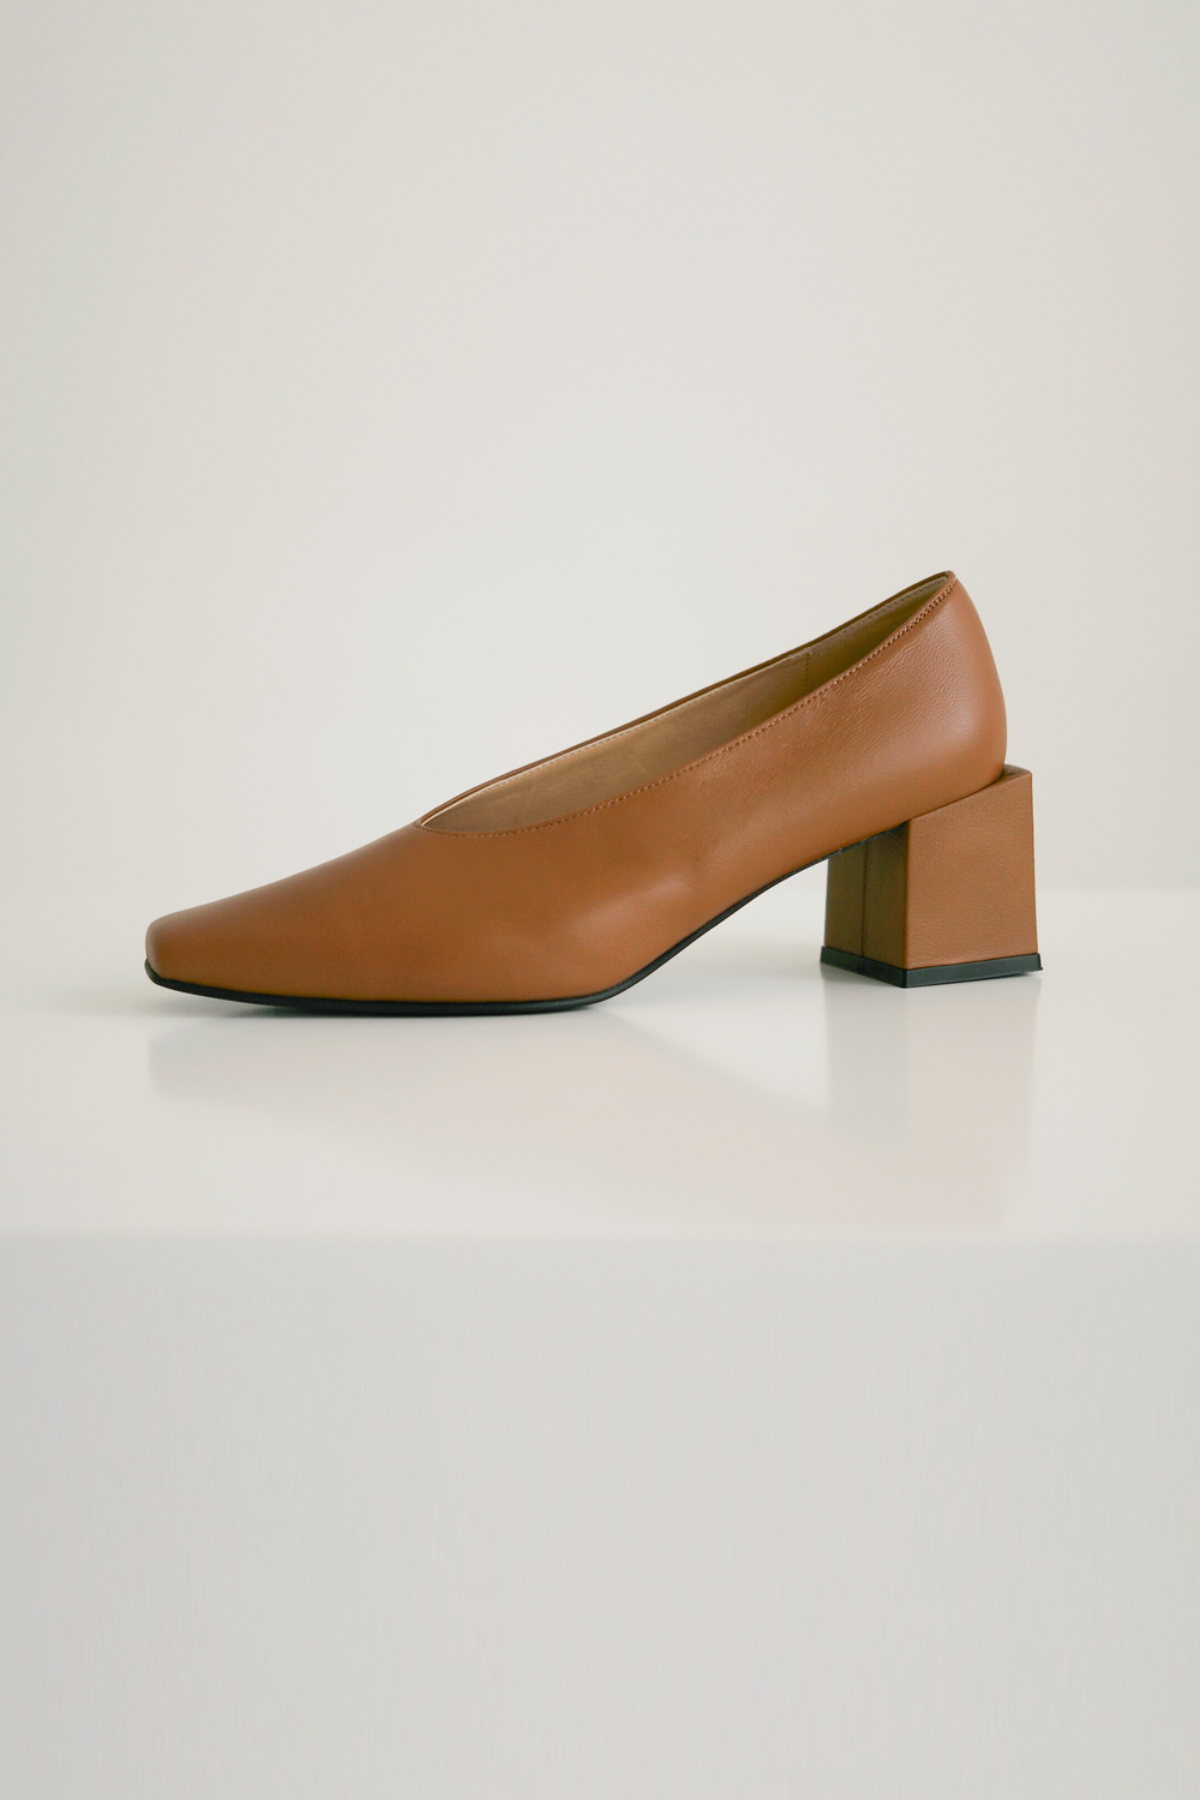 anthese venica square middle heel, camel